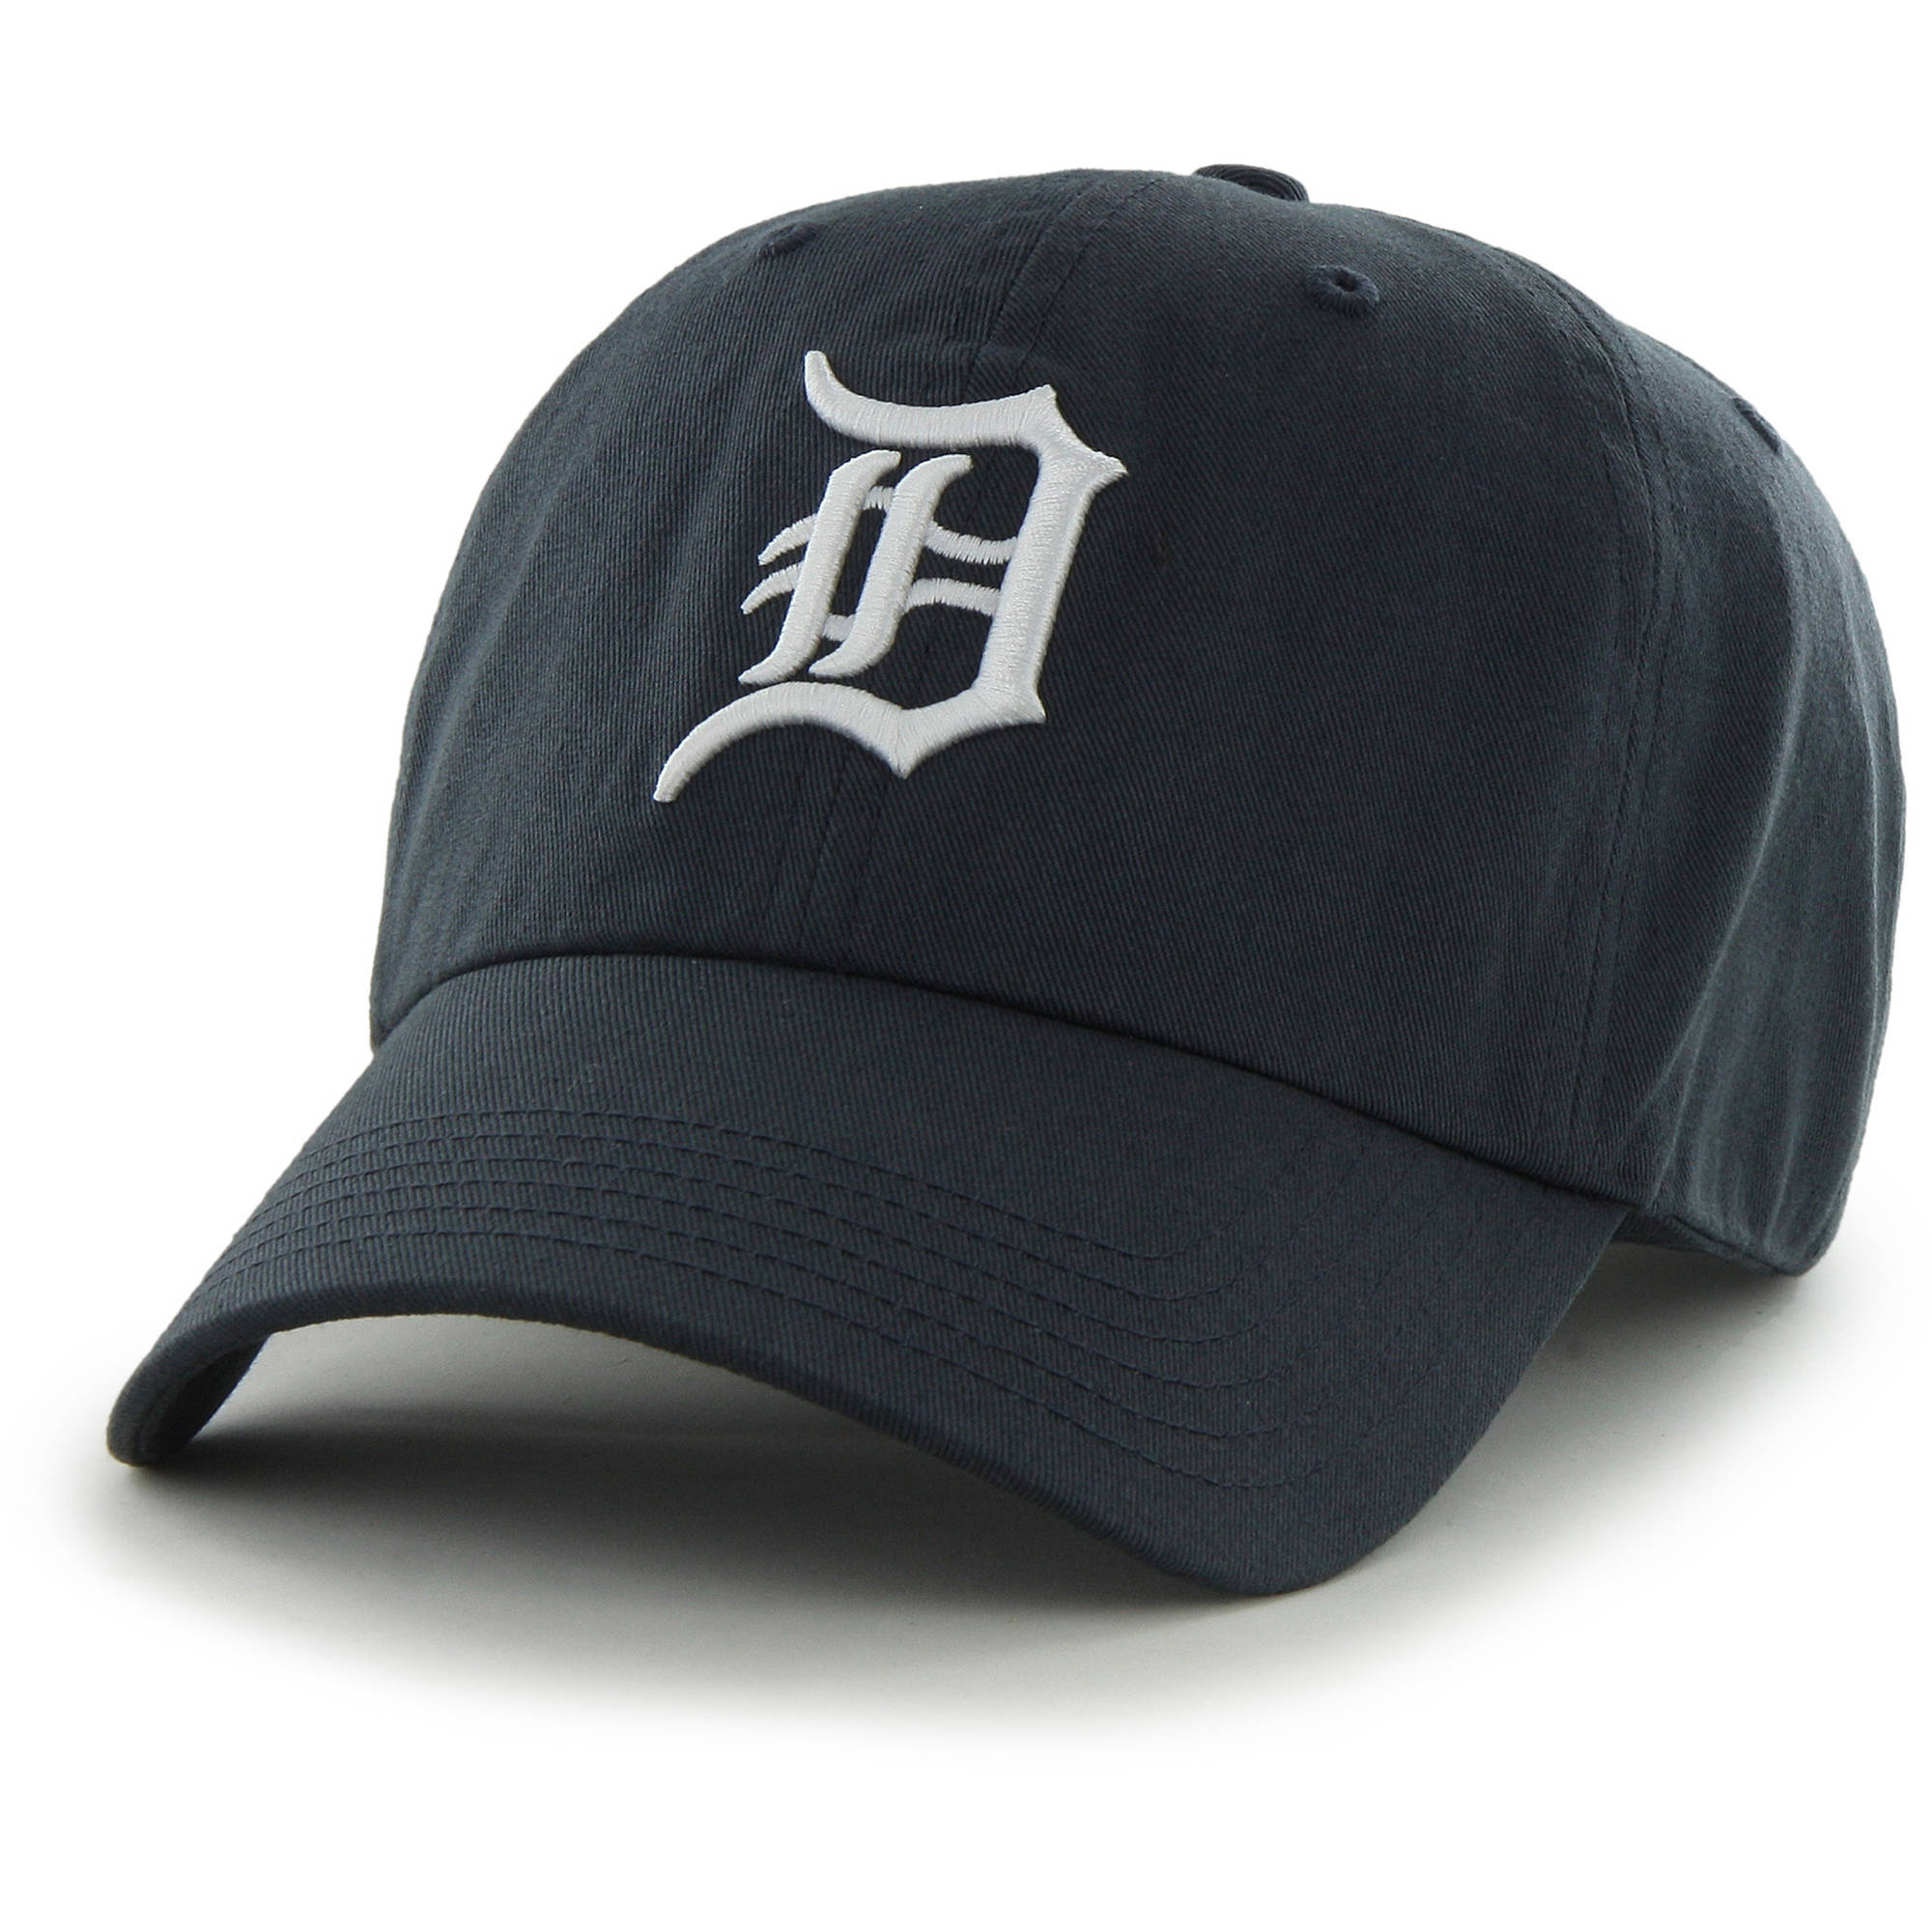 MLB Detroit Tigers Clean Up Cap / Hat - Fan Favorite